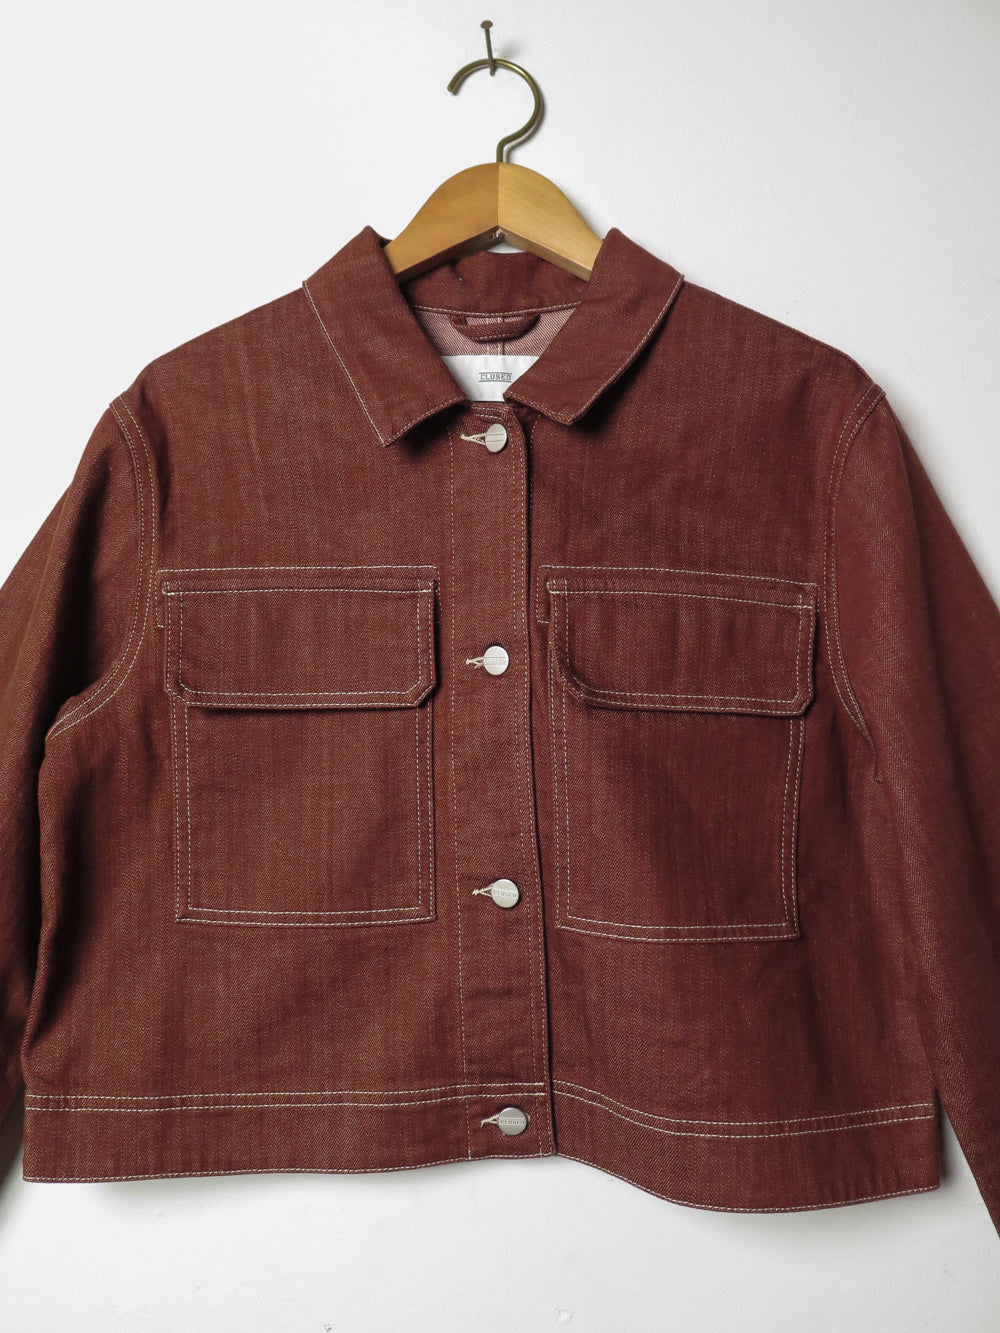 closed tale jacket in mahogany